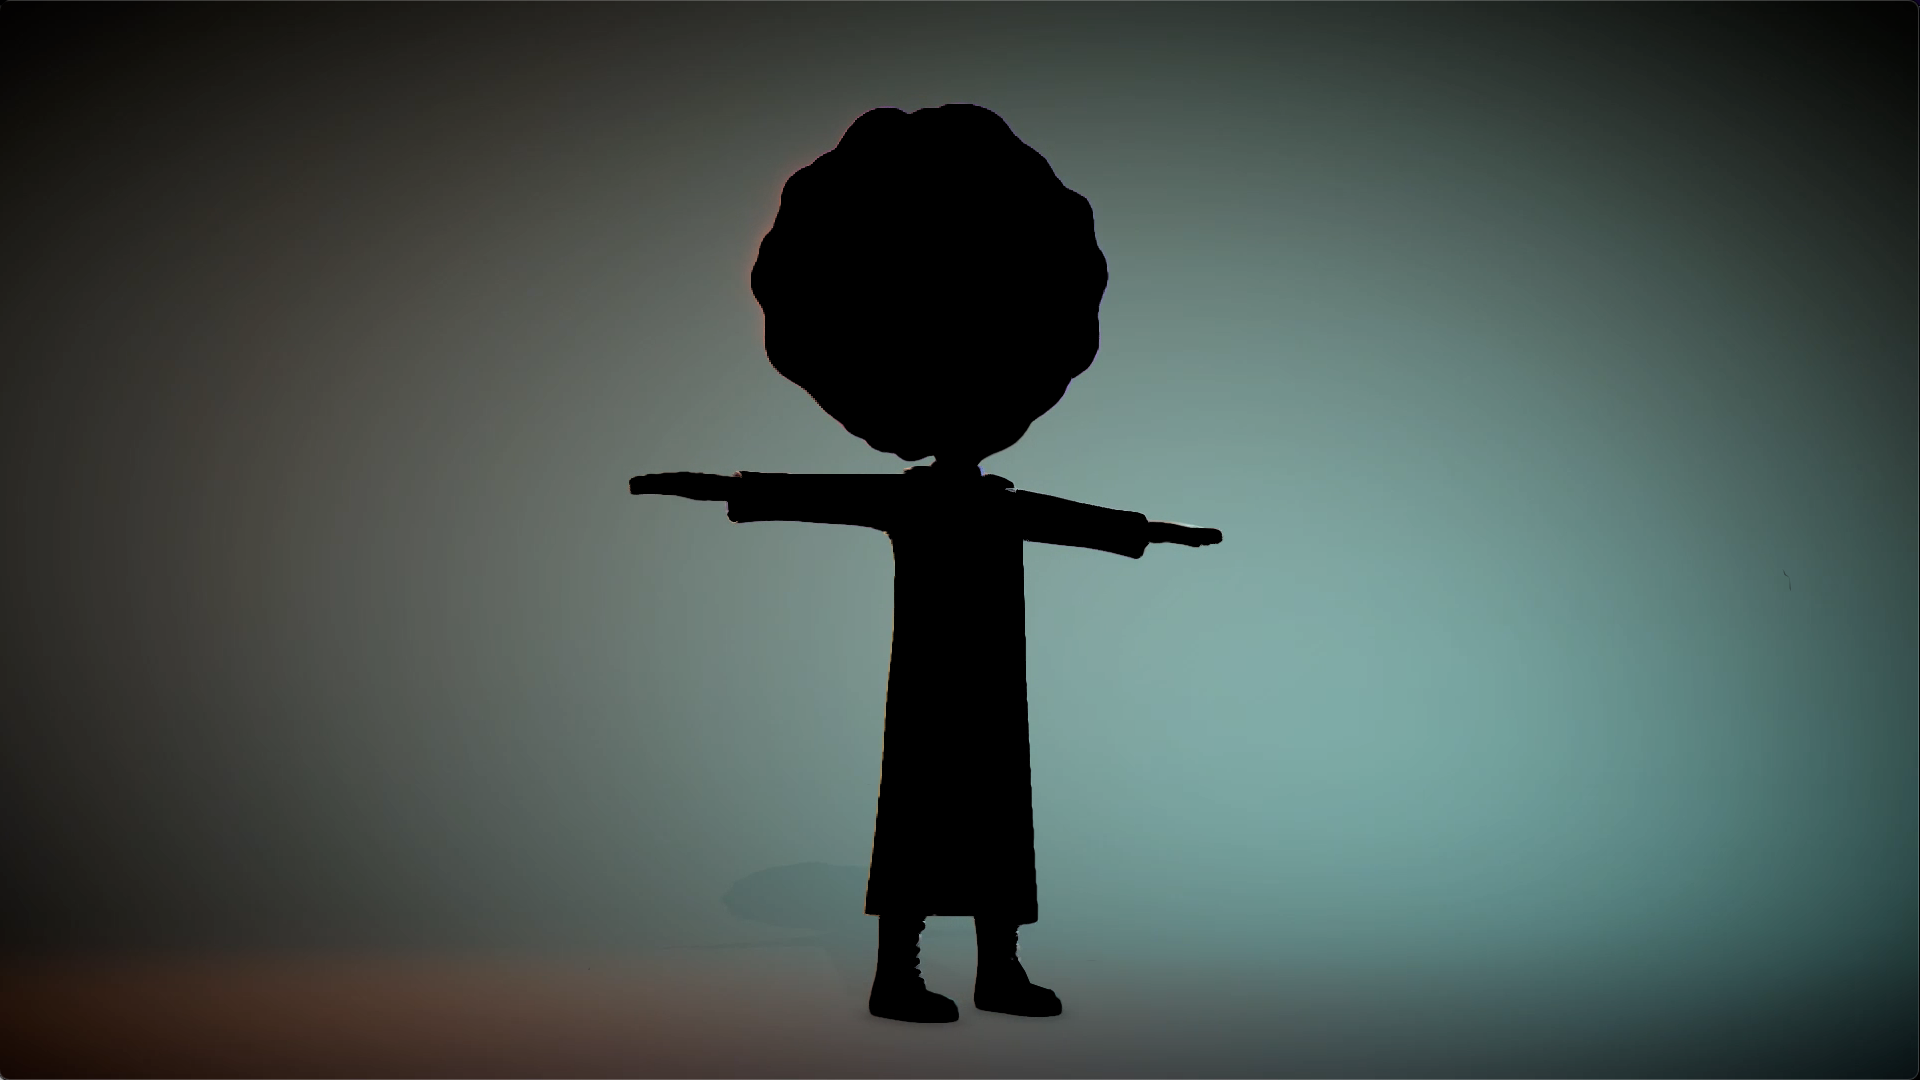 A silhouette of DoC, the mad scientist